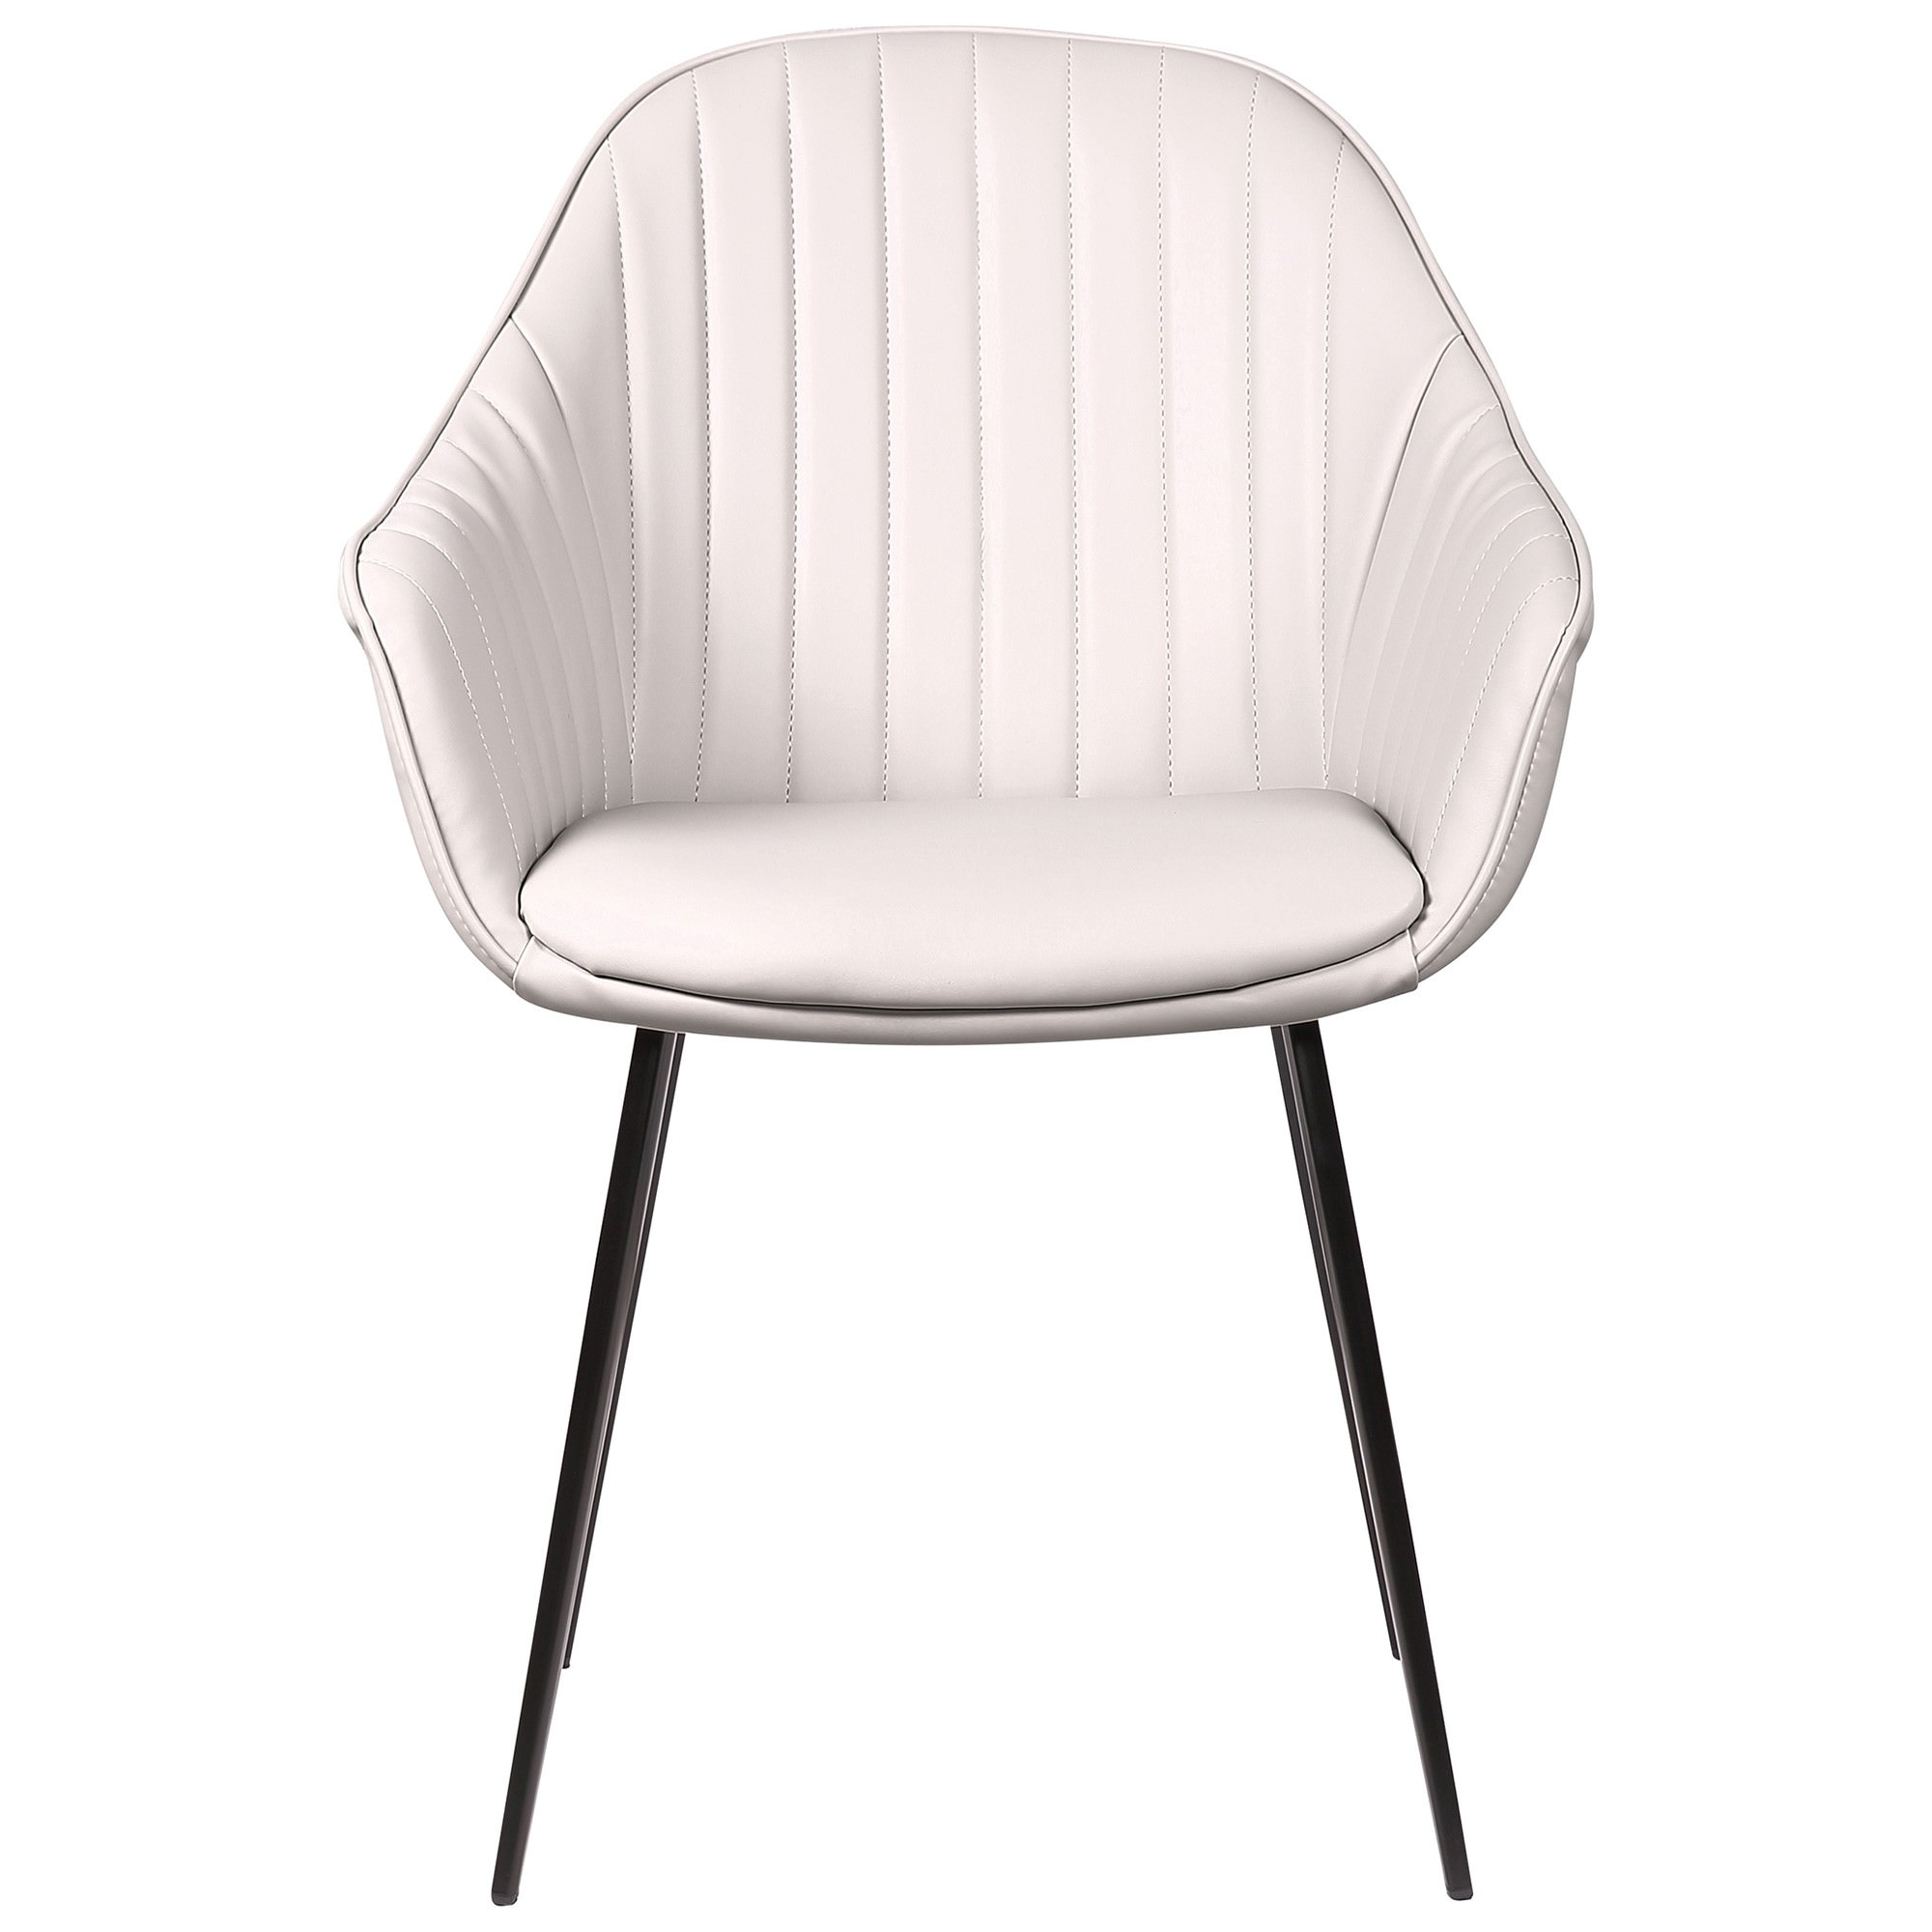 Eford Commercial Grade Faux Leather Dining Chair, Light Grey